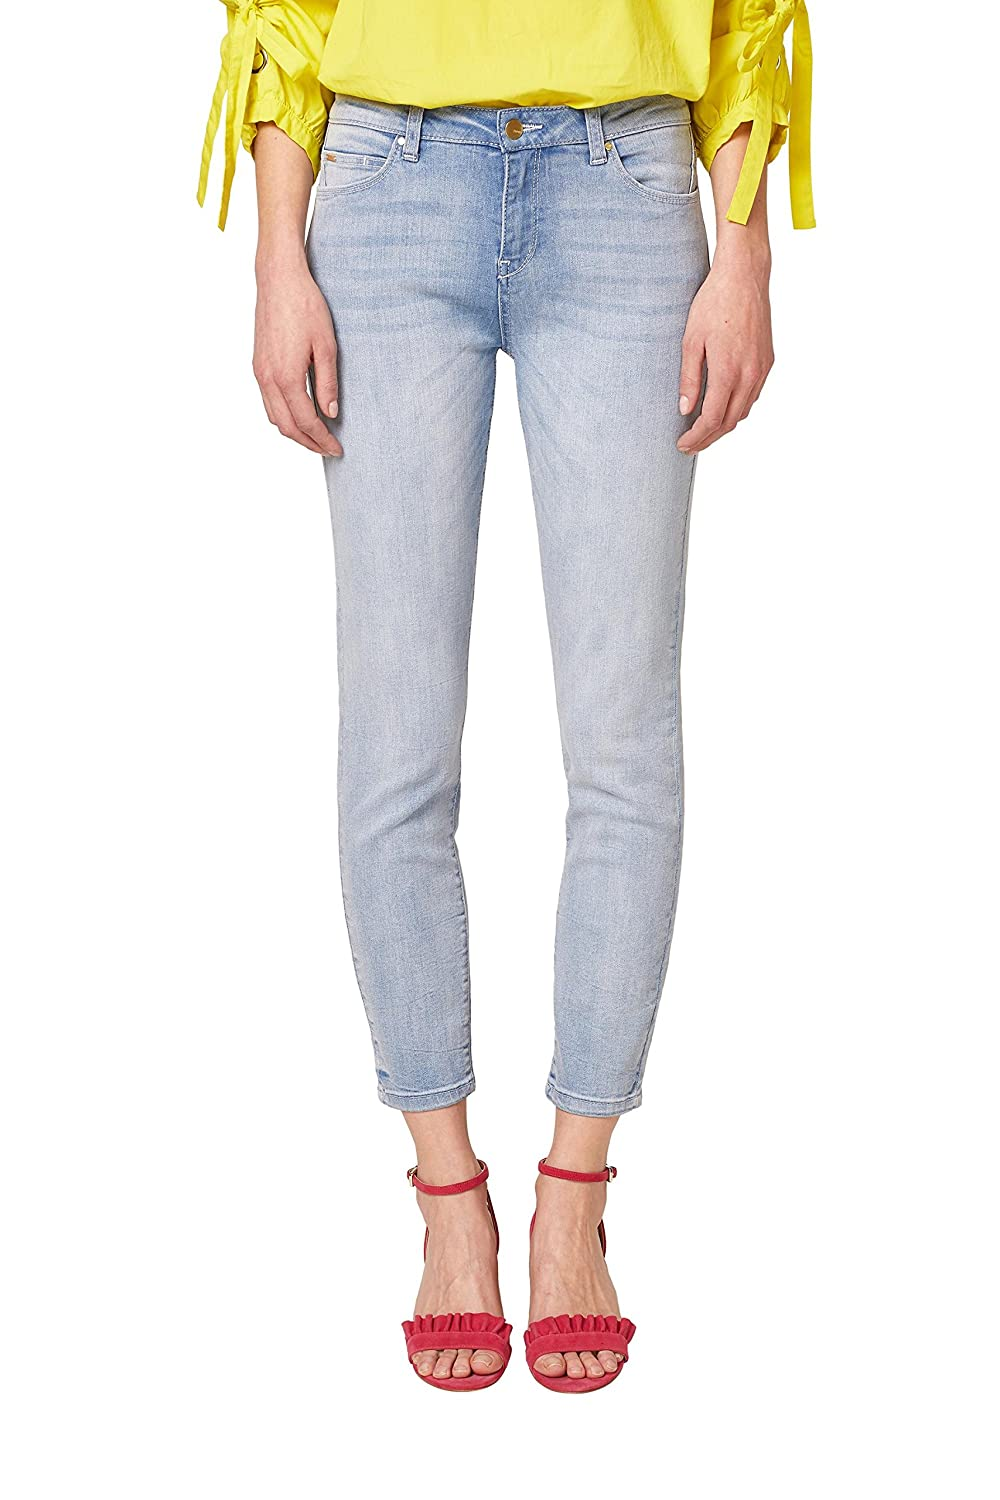 TALLA 29W / 28L. ESPRIT Collection Vaqueros Slim para Mujer